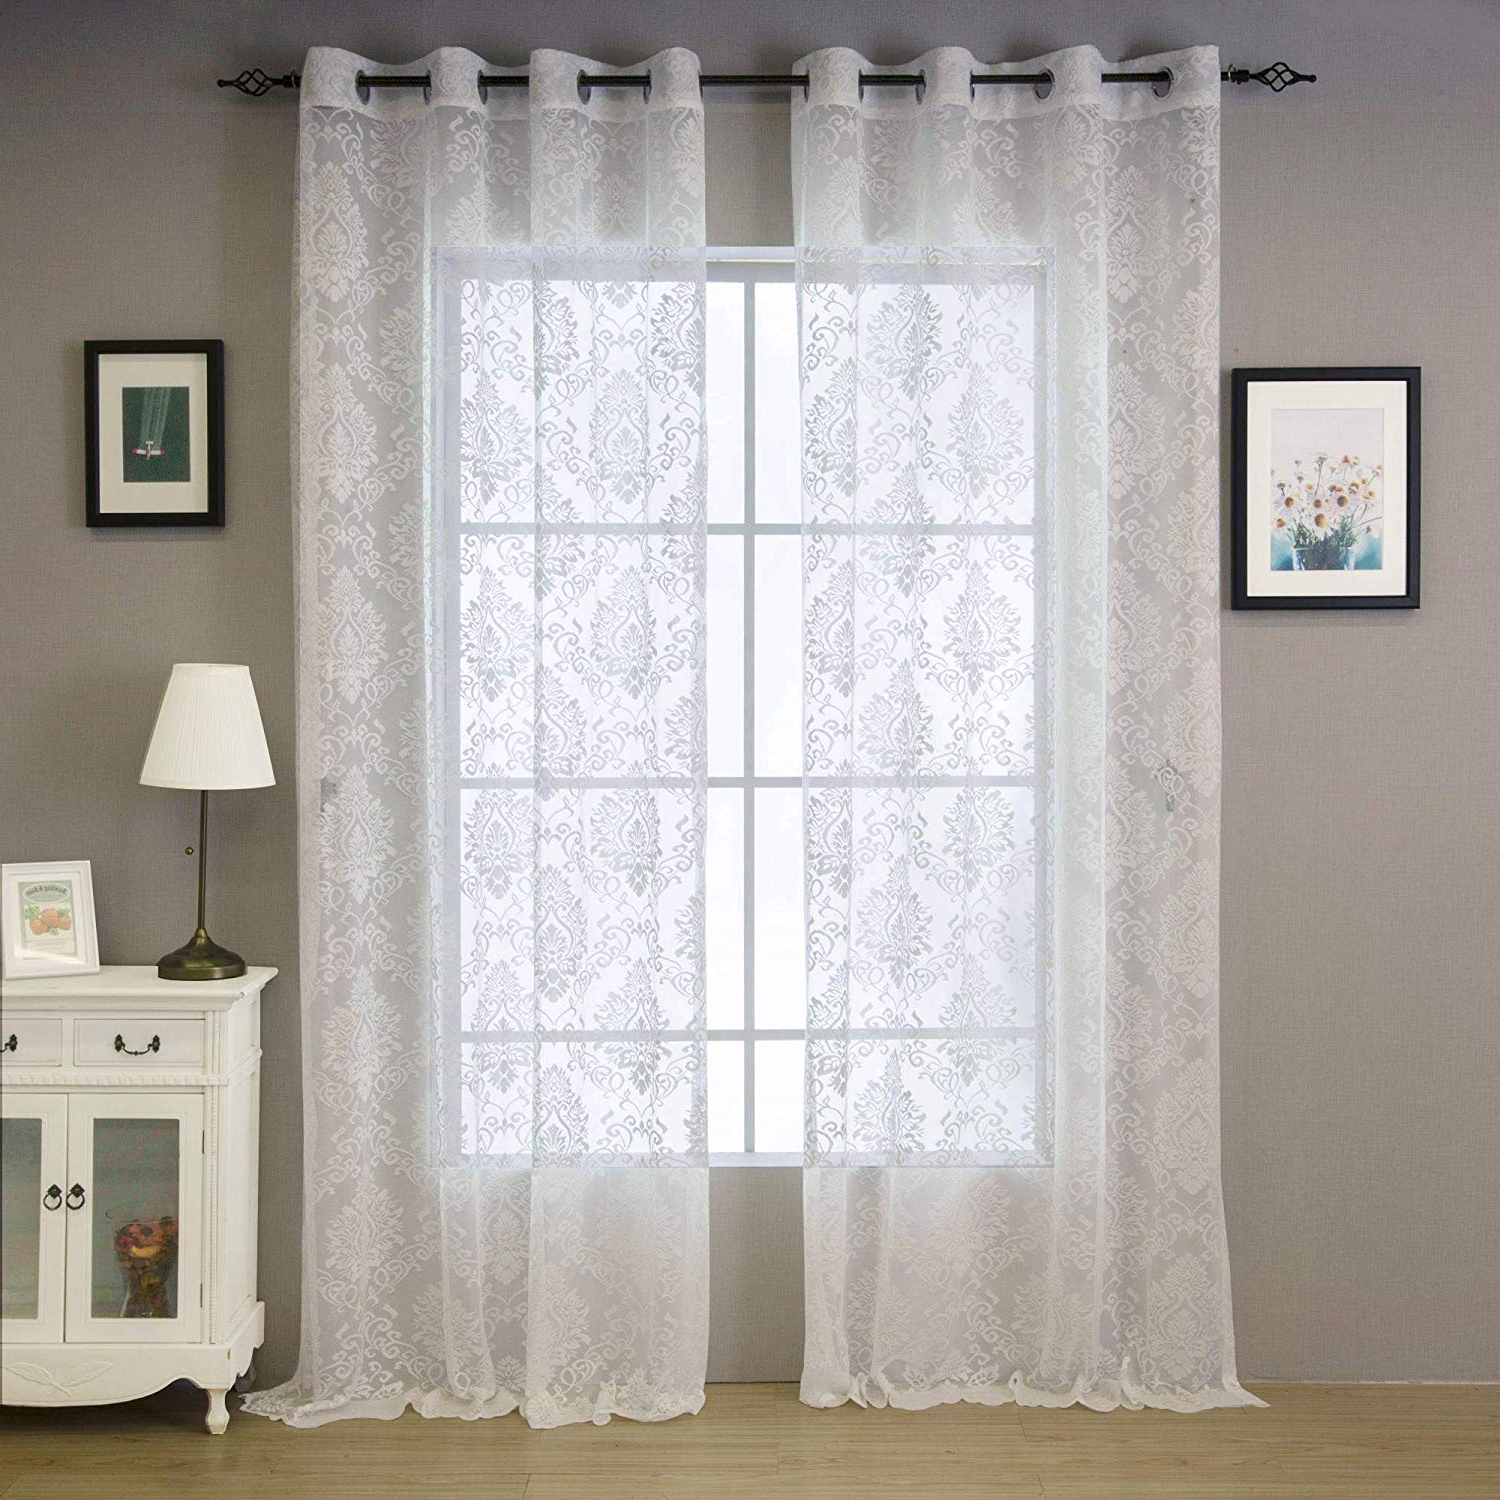 "Valea Home Lace Sheer Curtains Grommet Drapes For Bedroom Living Room European Style, 54"" X 96"", White, 1 Panel Throughout Best And Newest Luxurious Old World Style Lace Window Curtain Panels (View 12 of 20)"